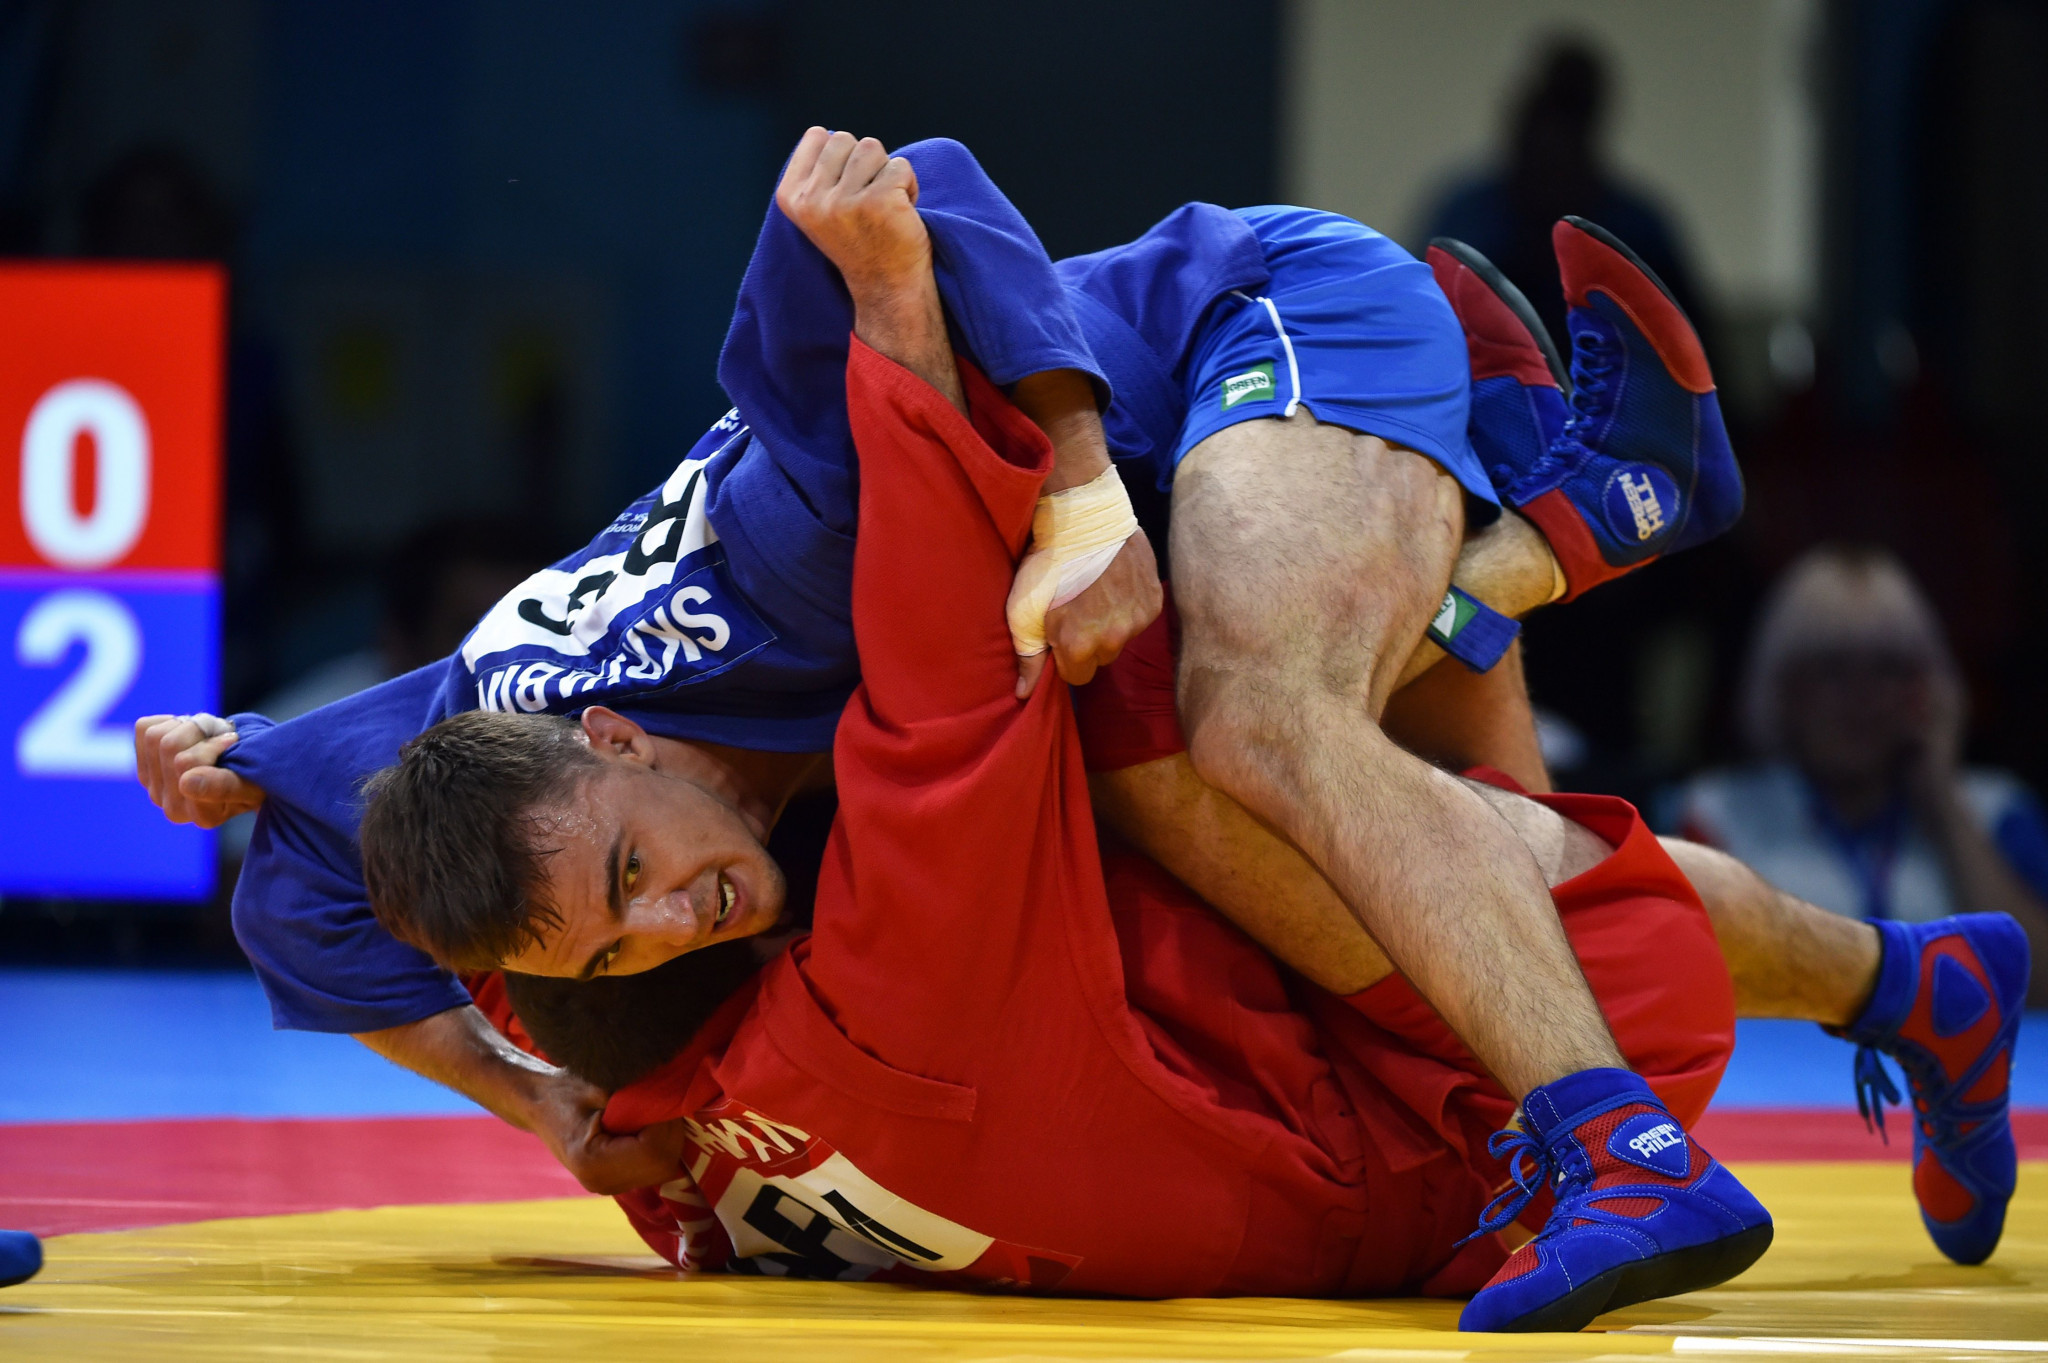 Sambo events have been suspended due to the coronavirus pandemic ©Getty Images